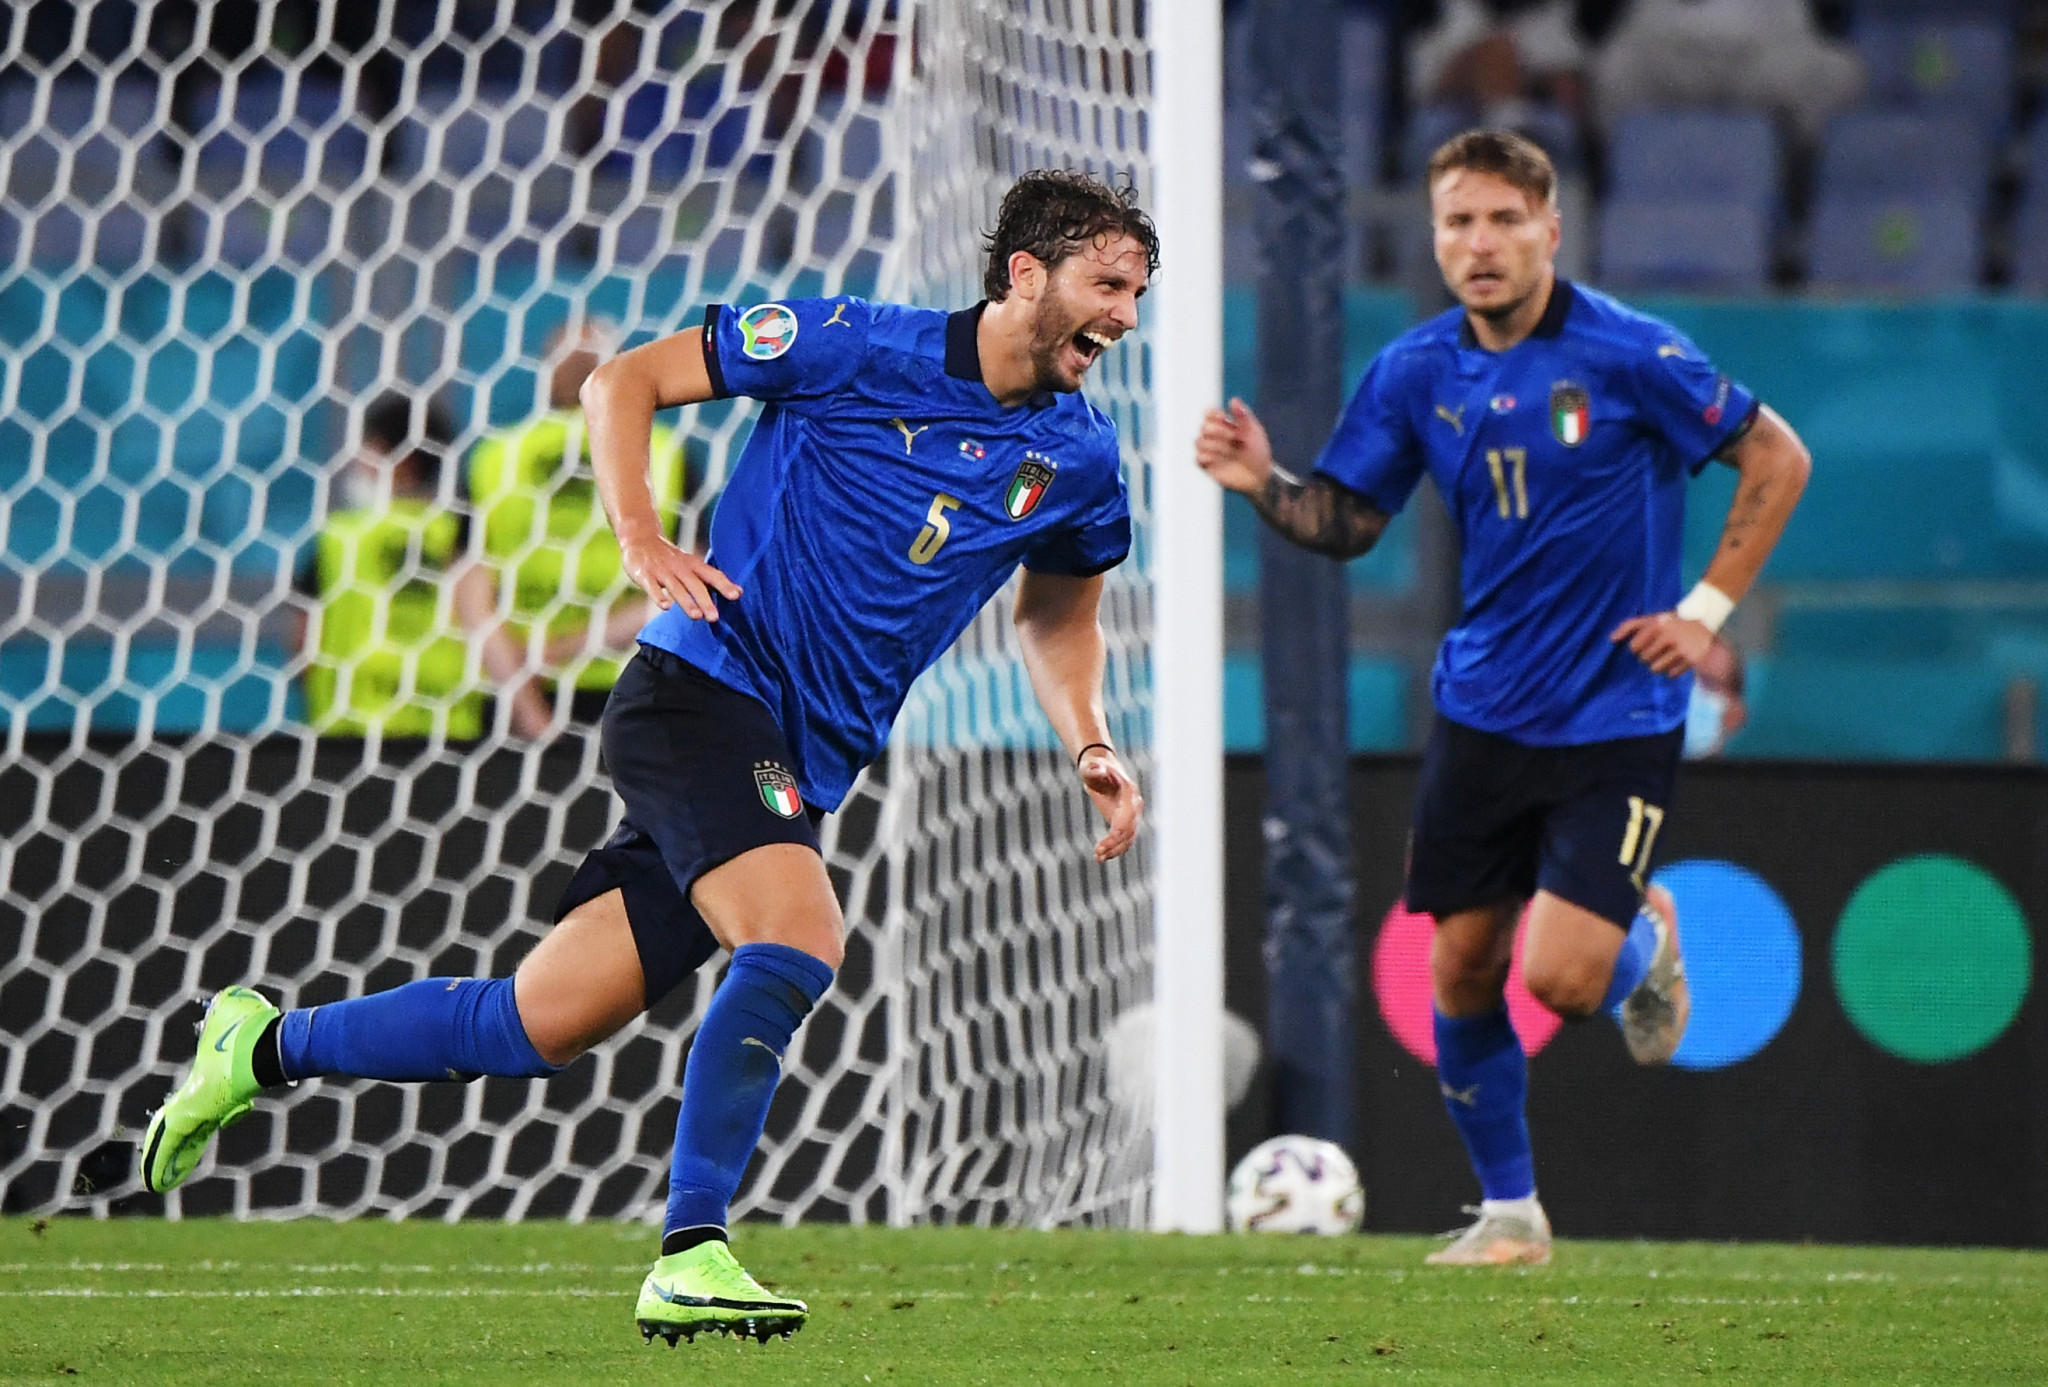 Italy's Manuel Locatelli celebrates scoring his second goal in Italy's 3-0 victory over Switzerland in Rome to guarantee his side's qualification for the next round of Euro 2020 ©Getty Images